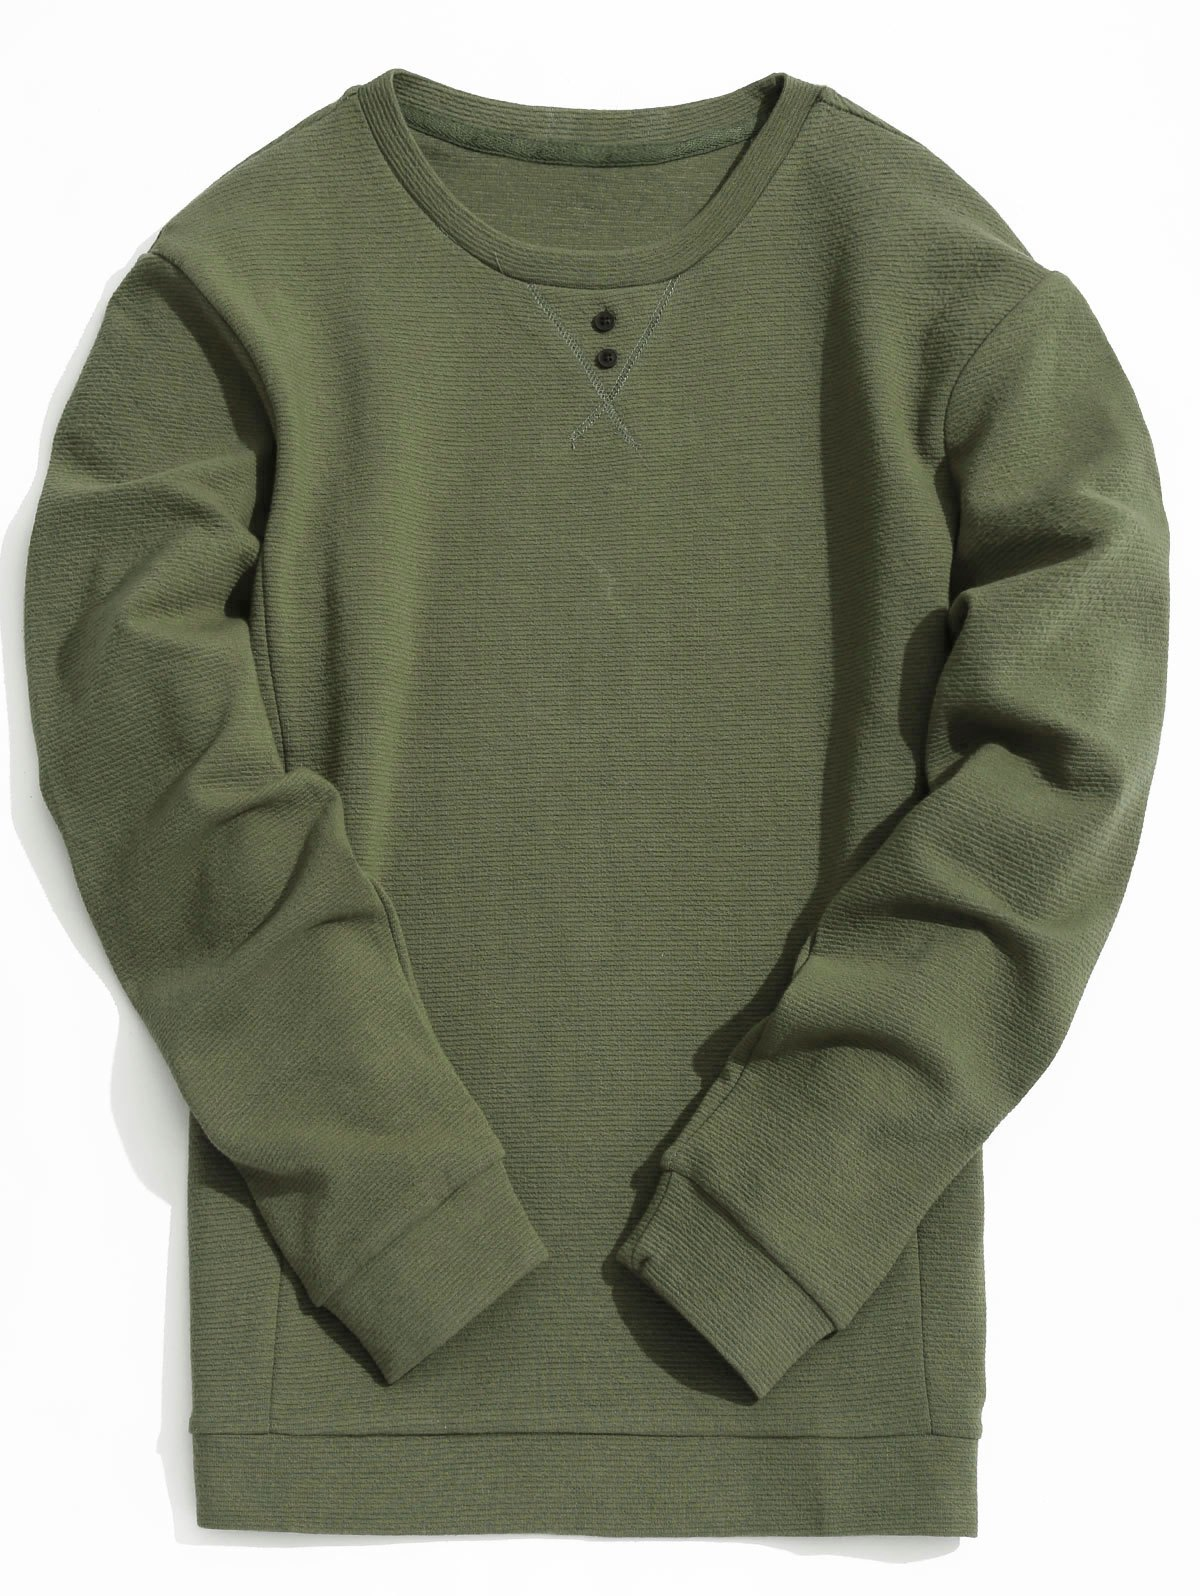 Cheap Textured Mens Sweatshirt